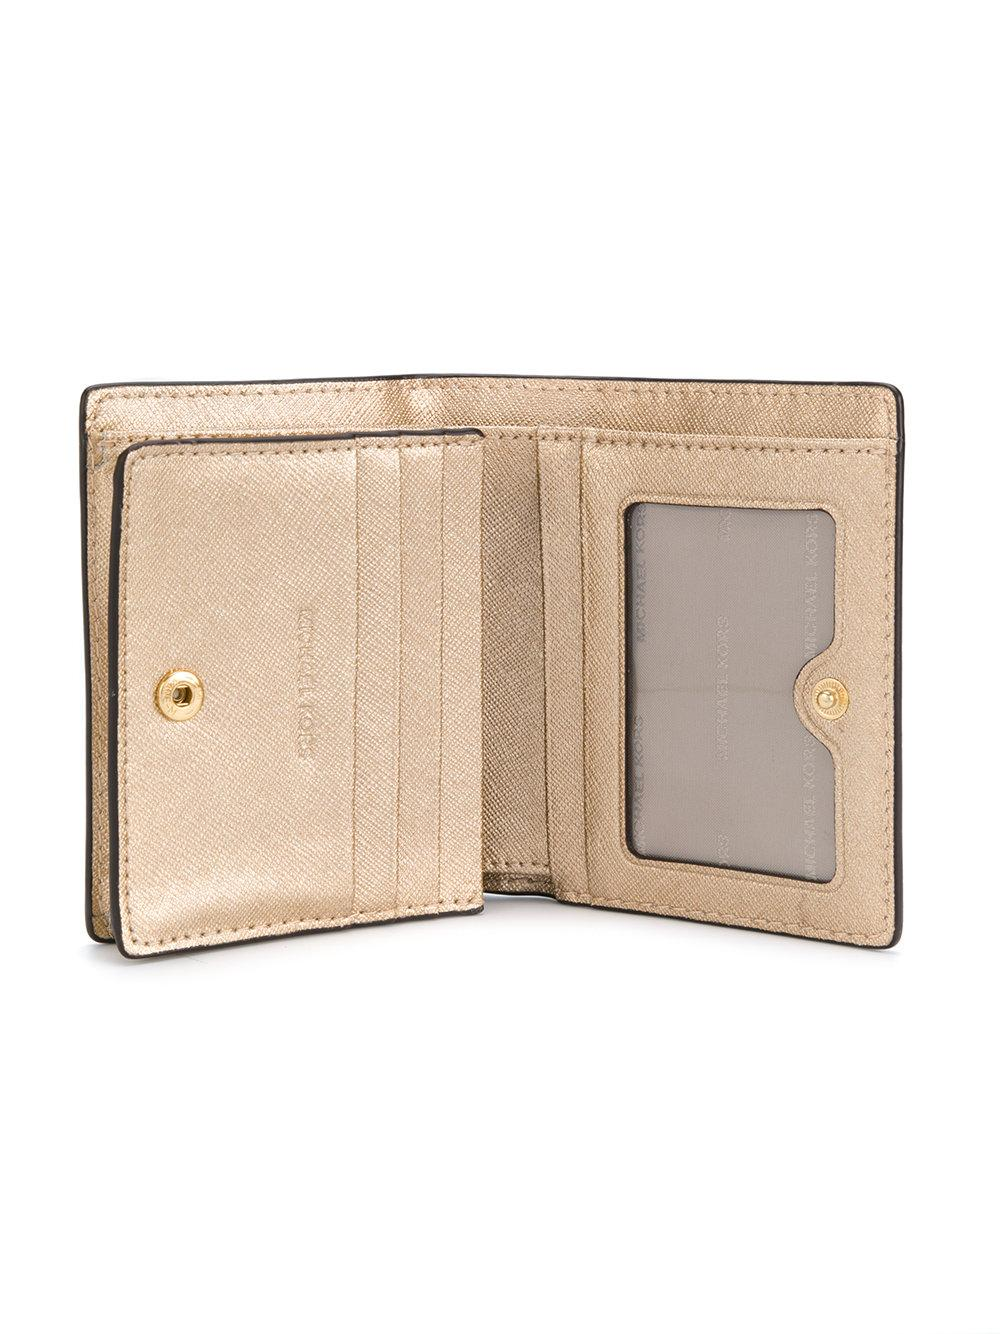 0459bef48c1e Small Logo And Leather Wallet Michael Kors | Stanford Center for ...